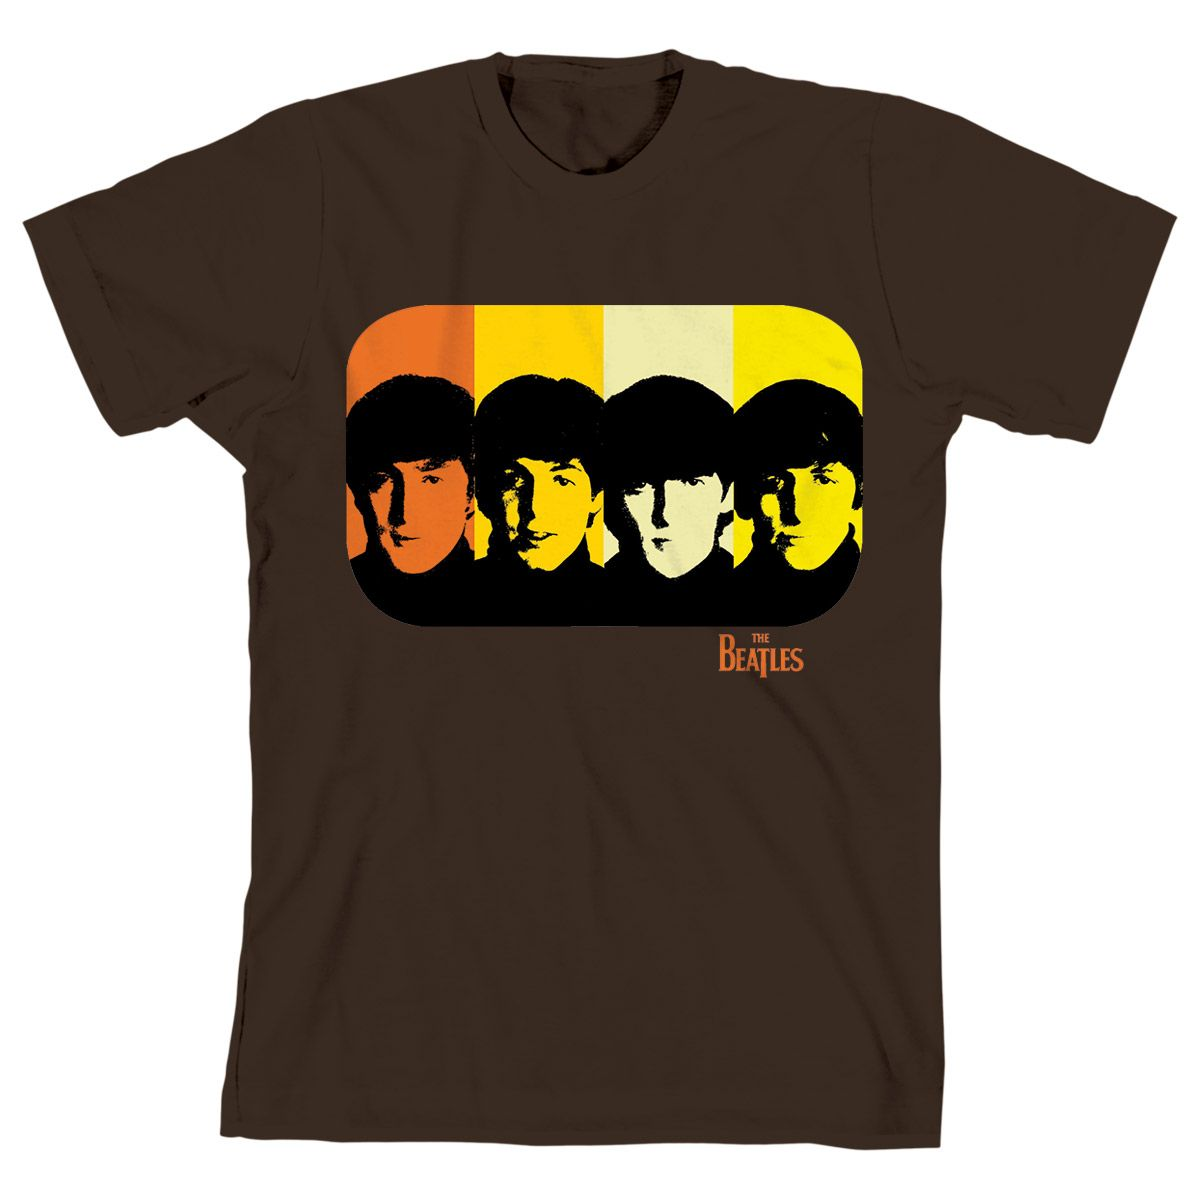 Camiseta Unissex The Beatles - Retro Design Basic